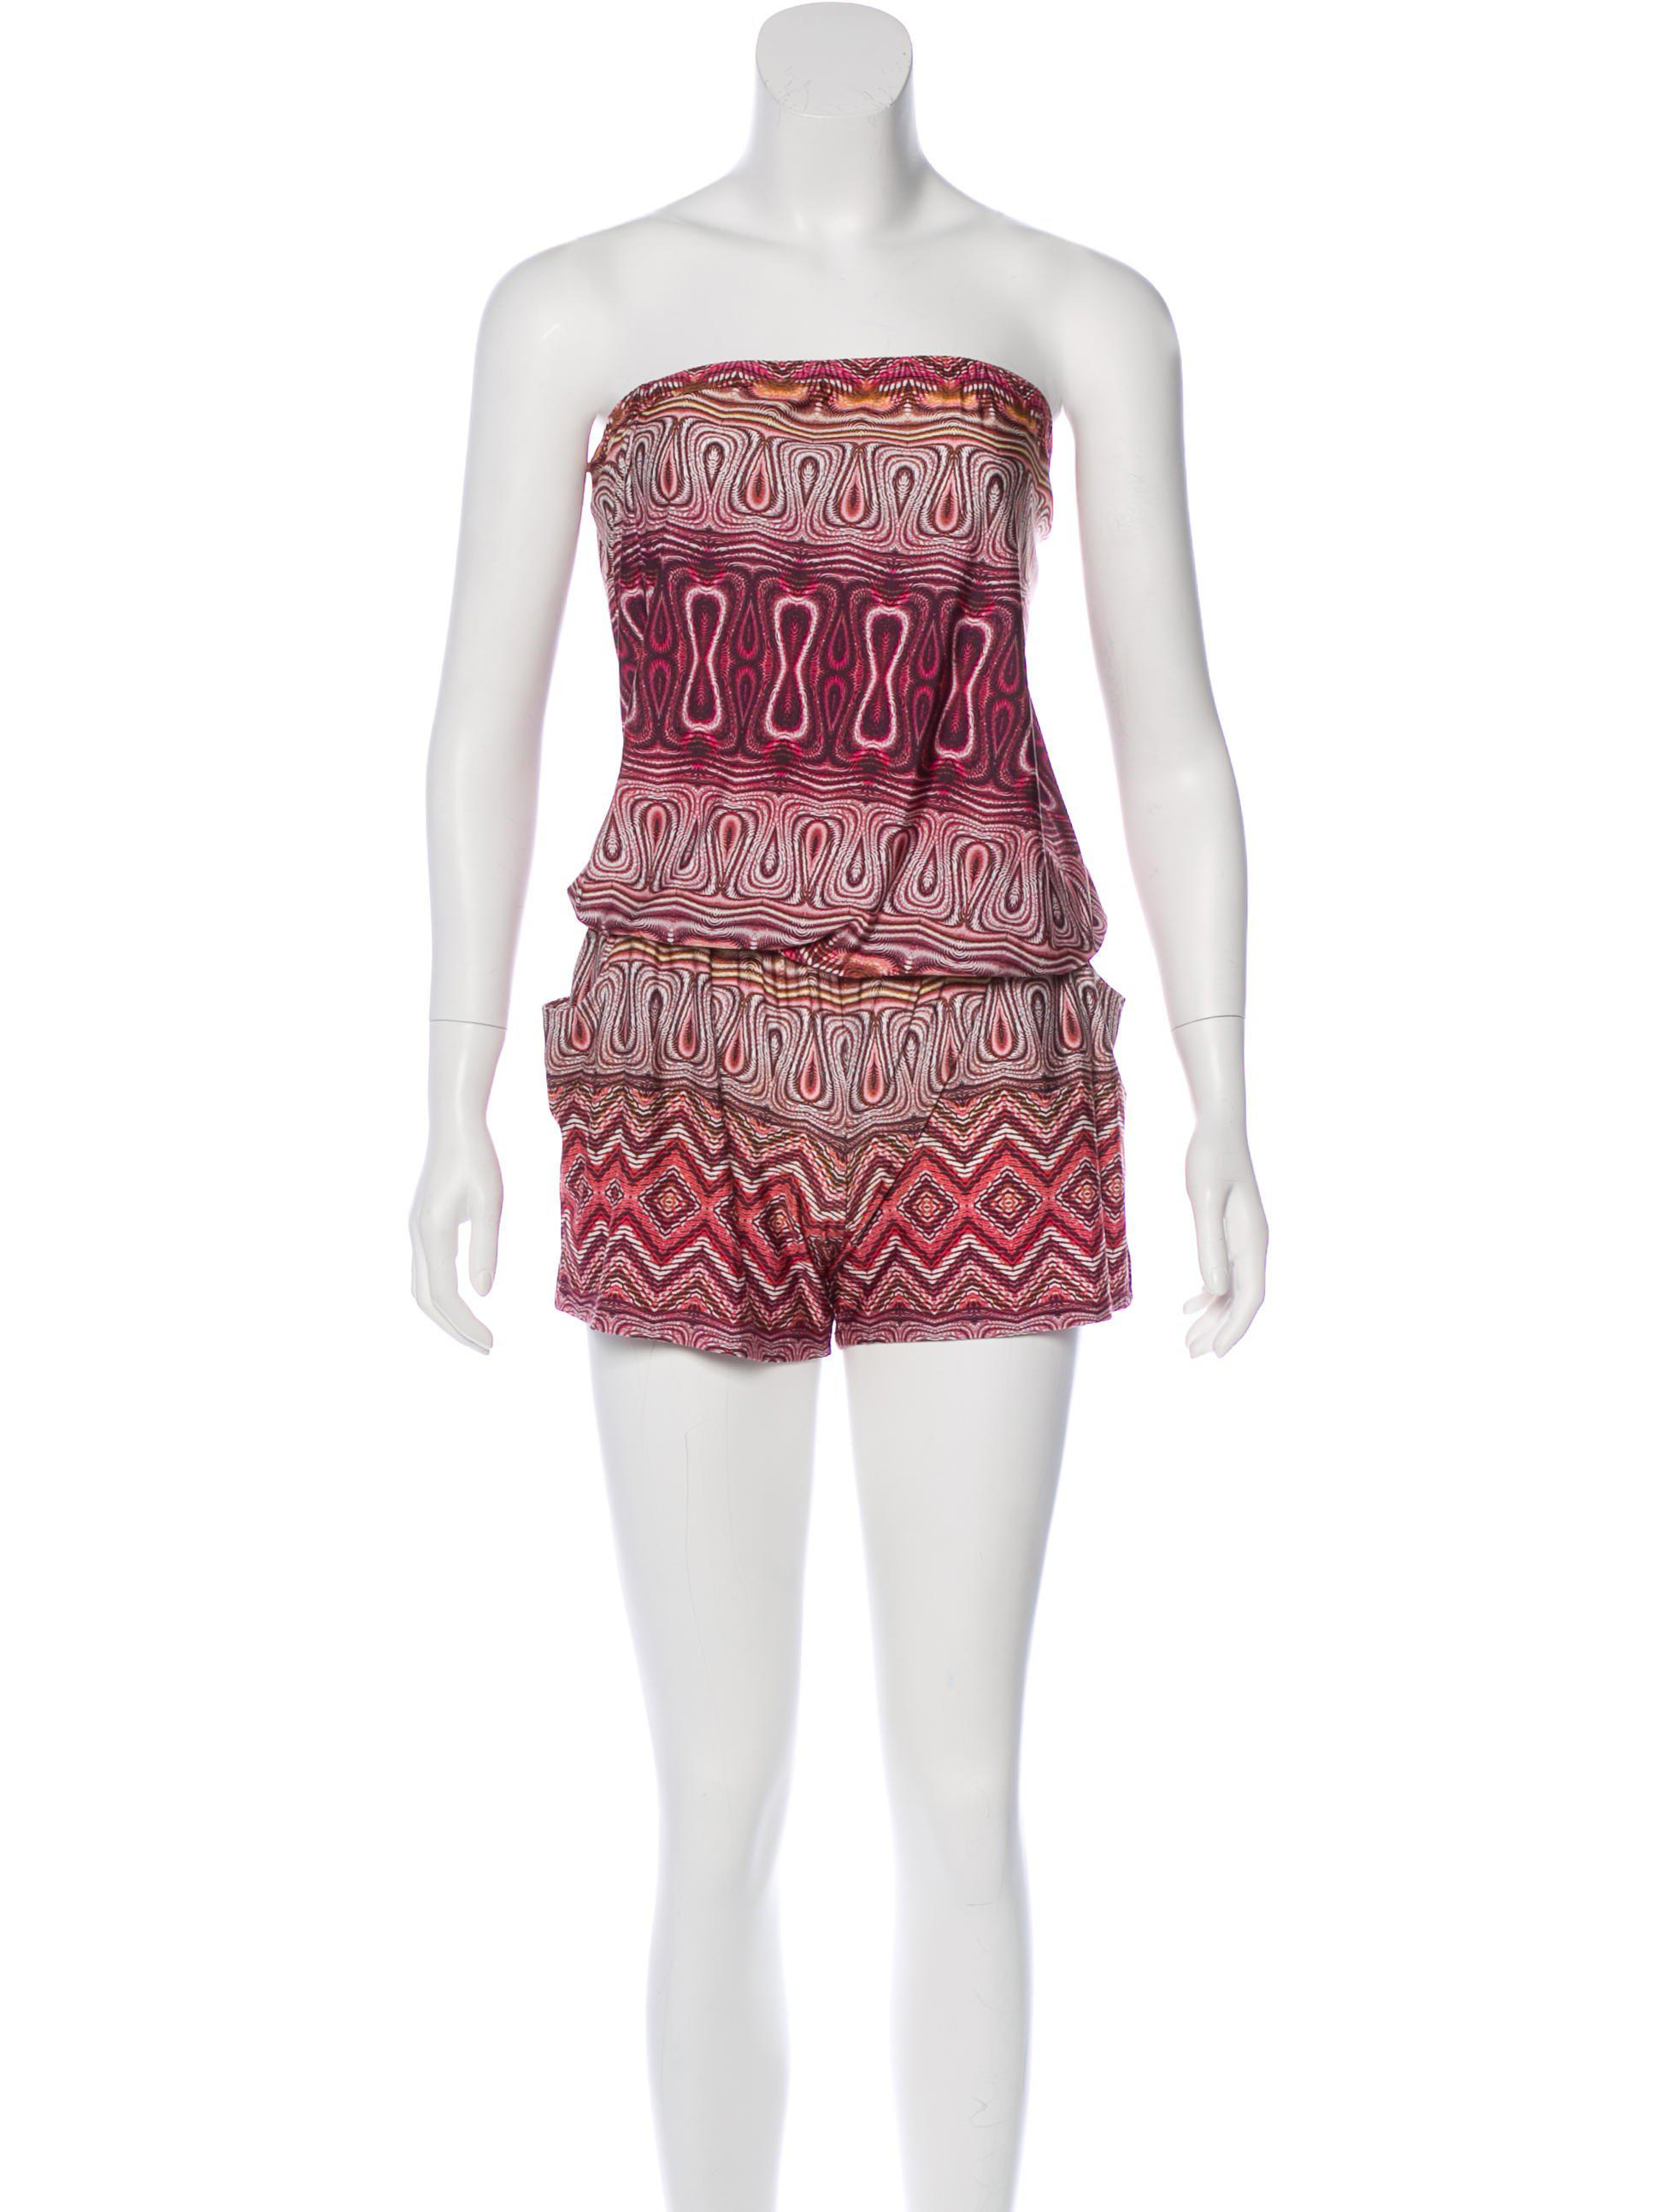 6b3411ace630 Alexis - Pink Strapless Printed Romper - Lyst. View fullscreen